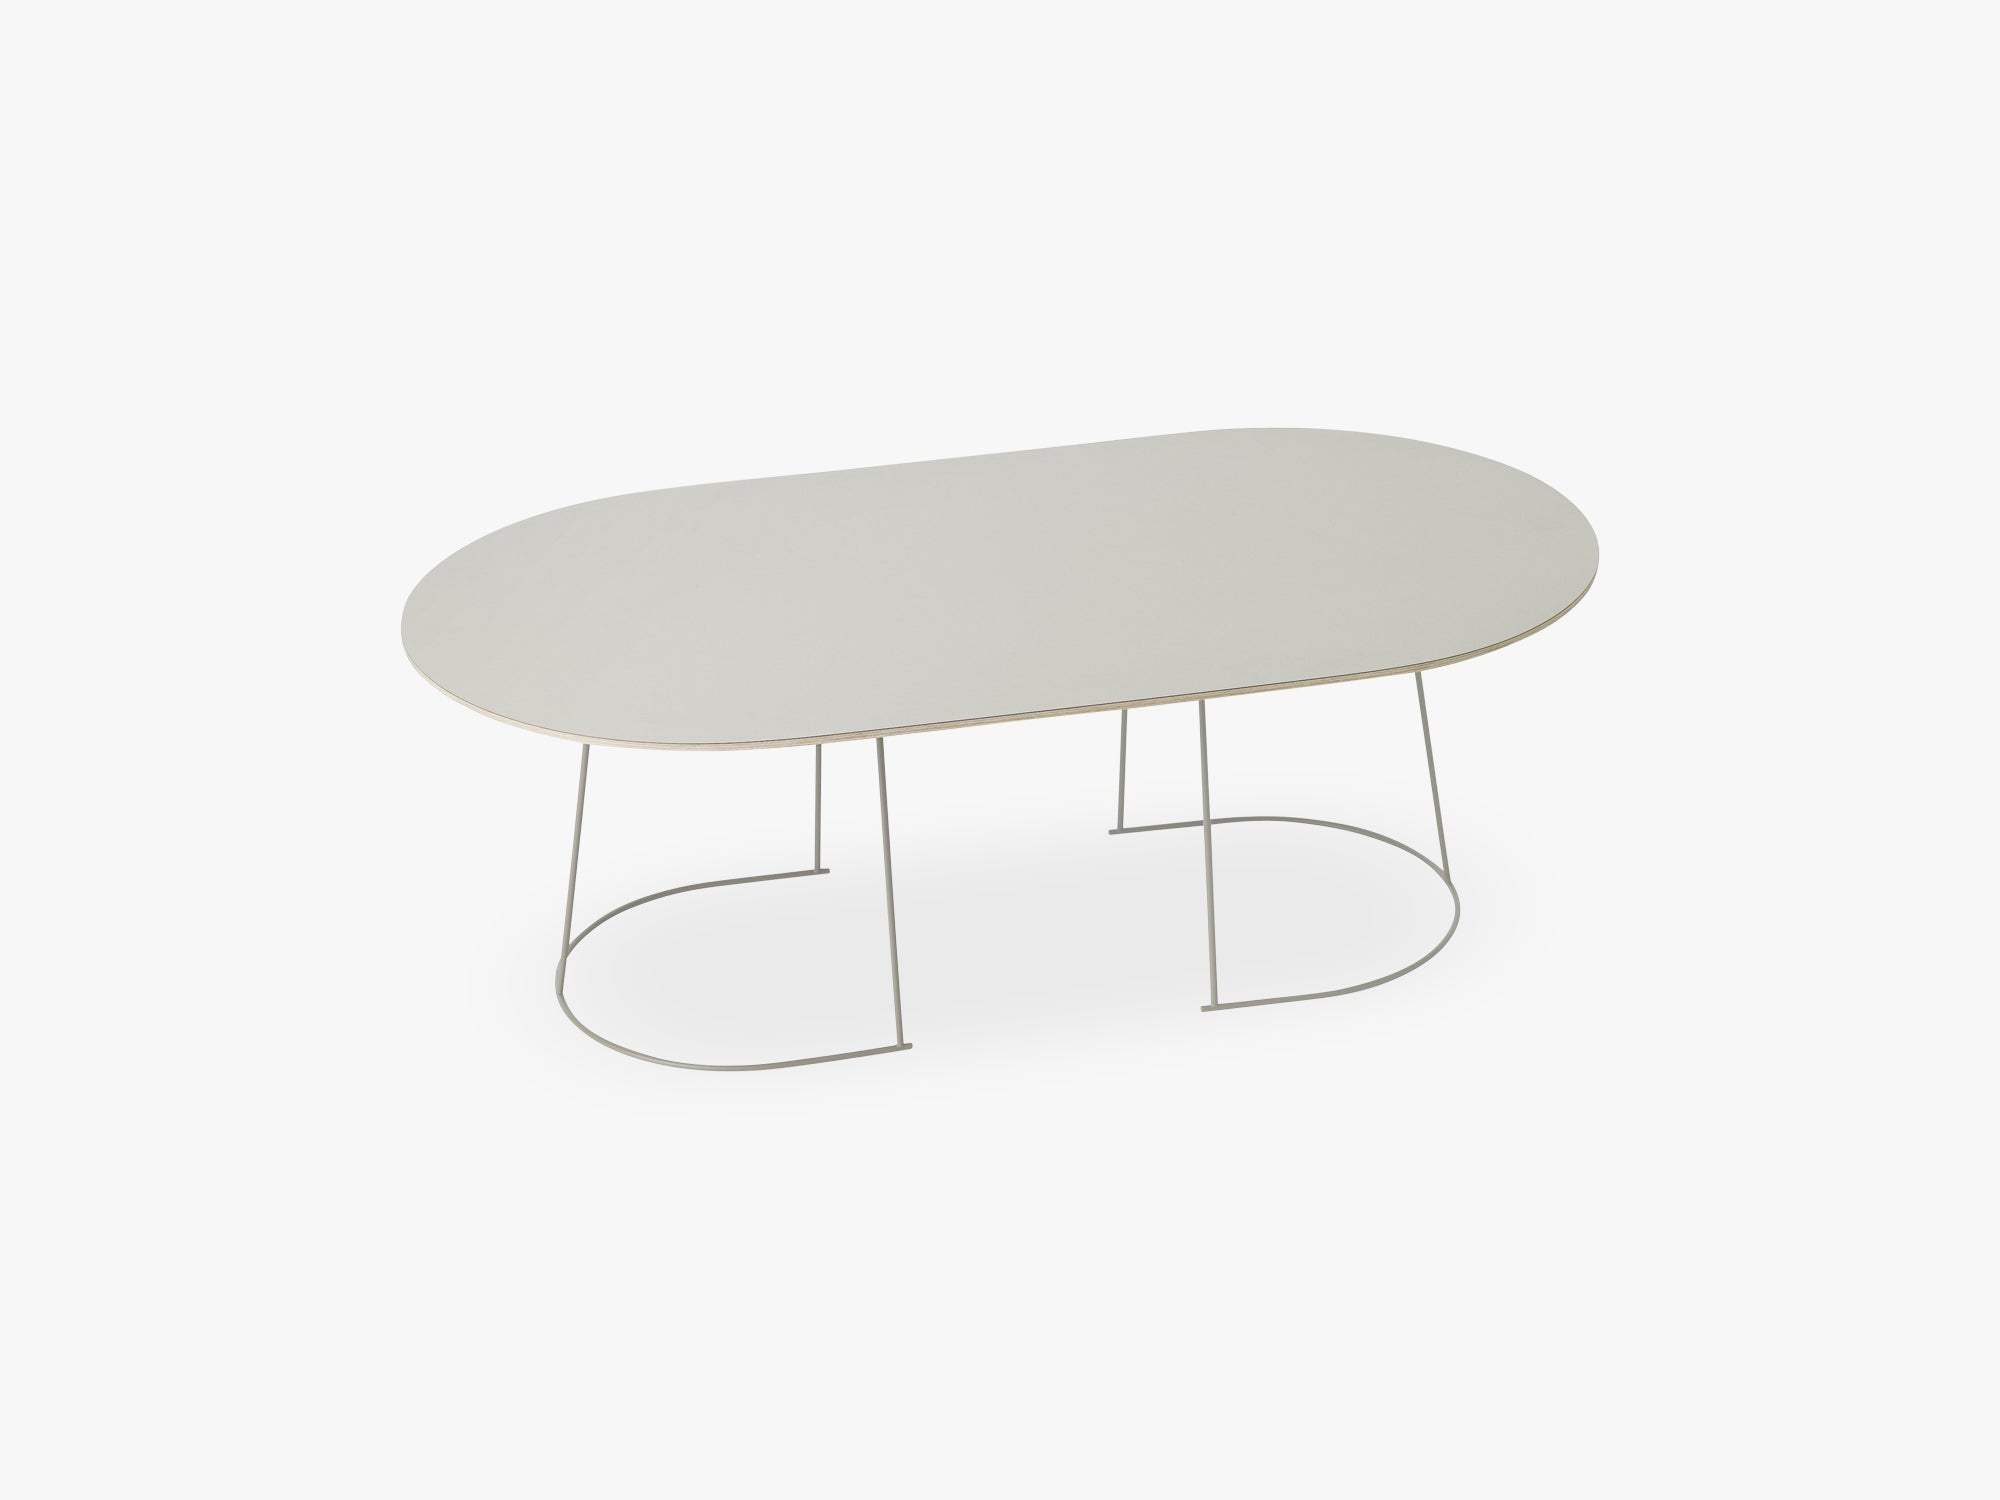 Airy Coffee Table - Large, Grey - Nanolaminate fra Muuto